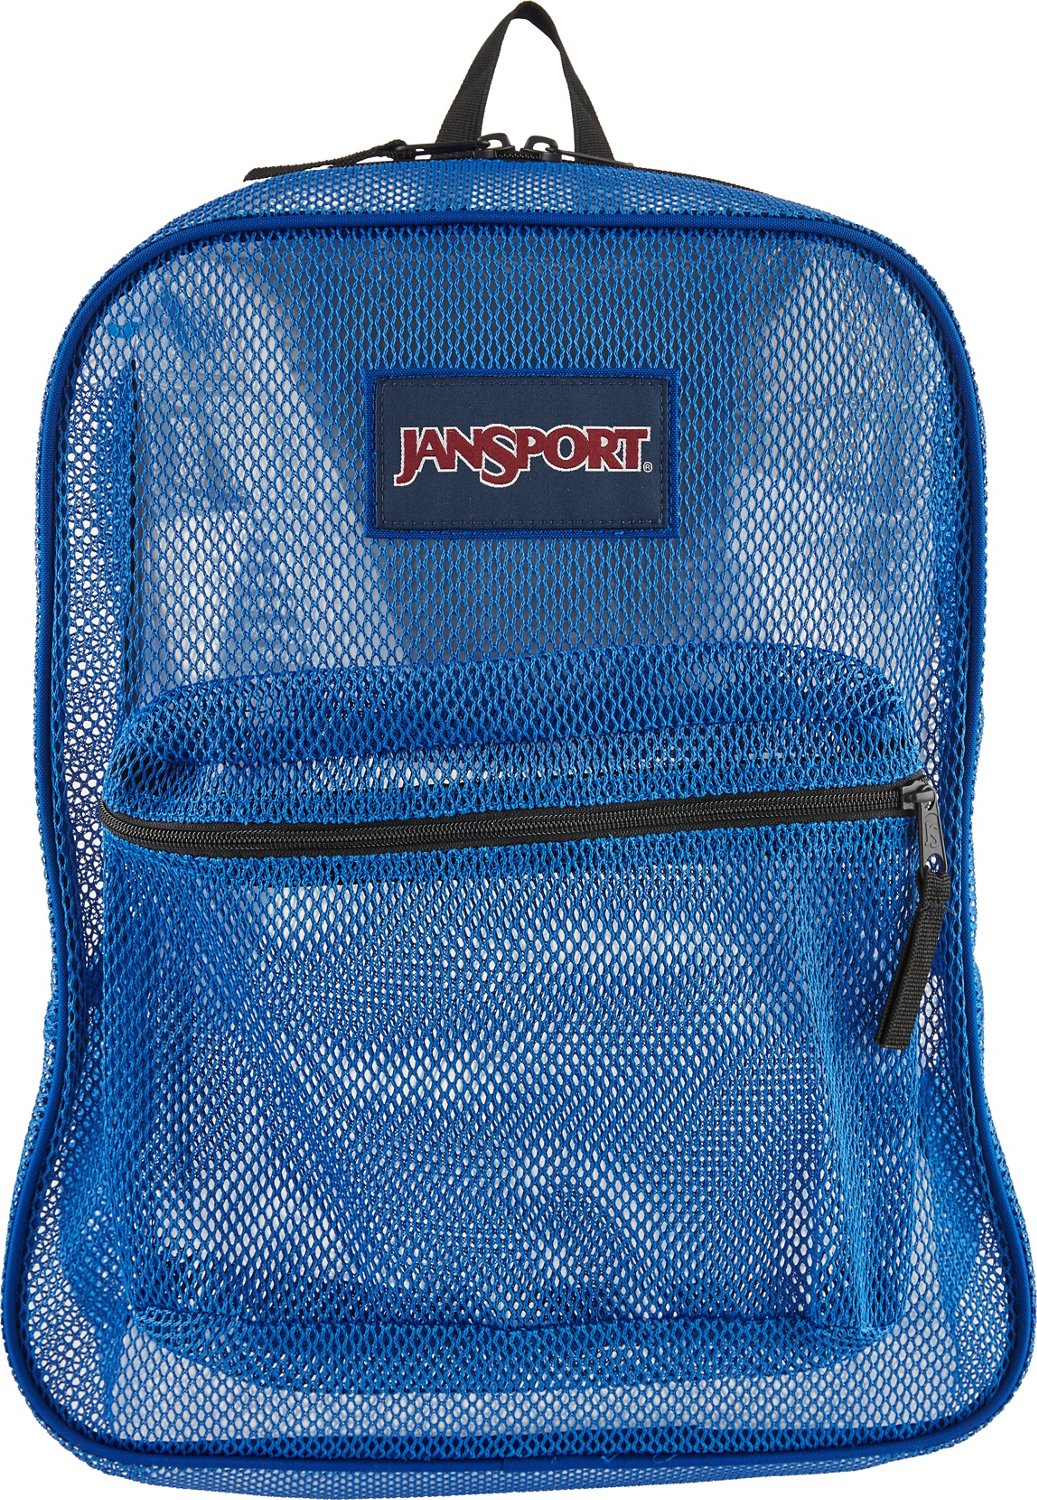 Jansport Mesh Backpack Warranty – Patmo Technologies Limited